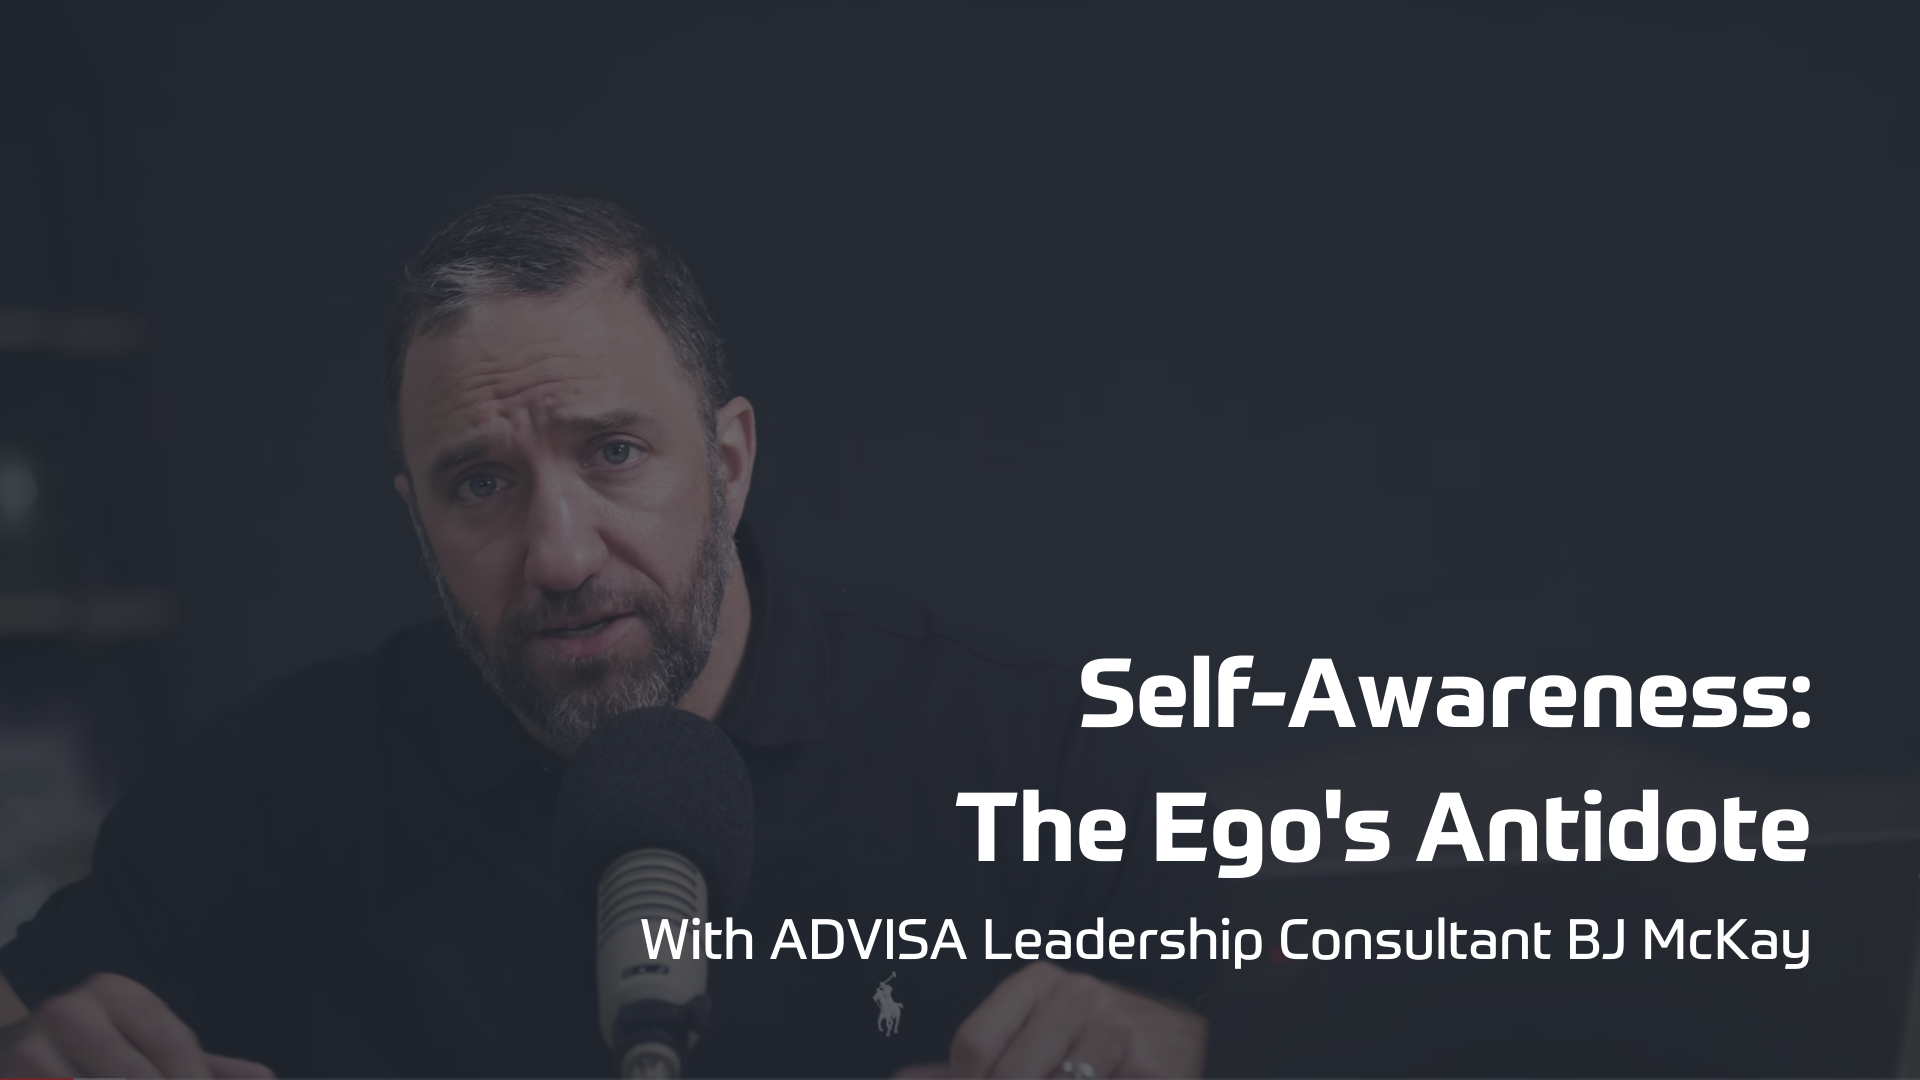 self-awareness and the ego